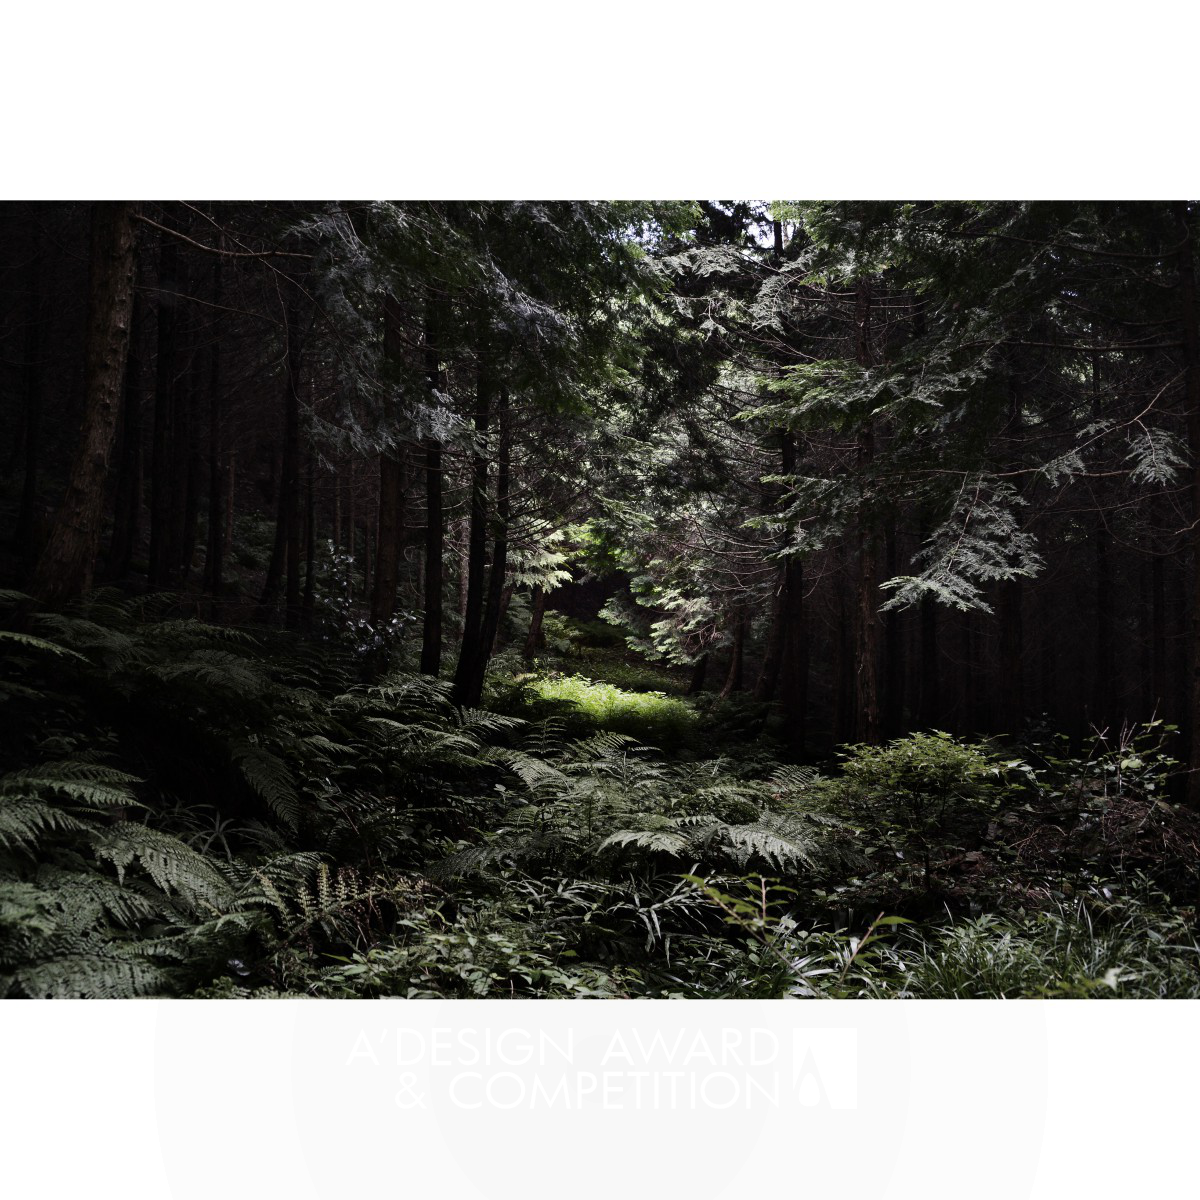 The Japanese Forest Photography